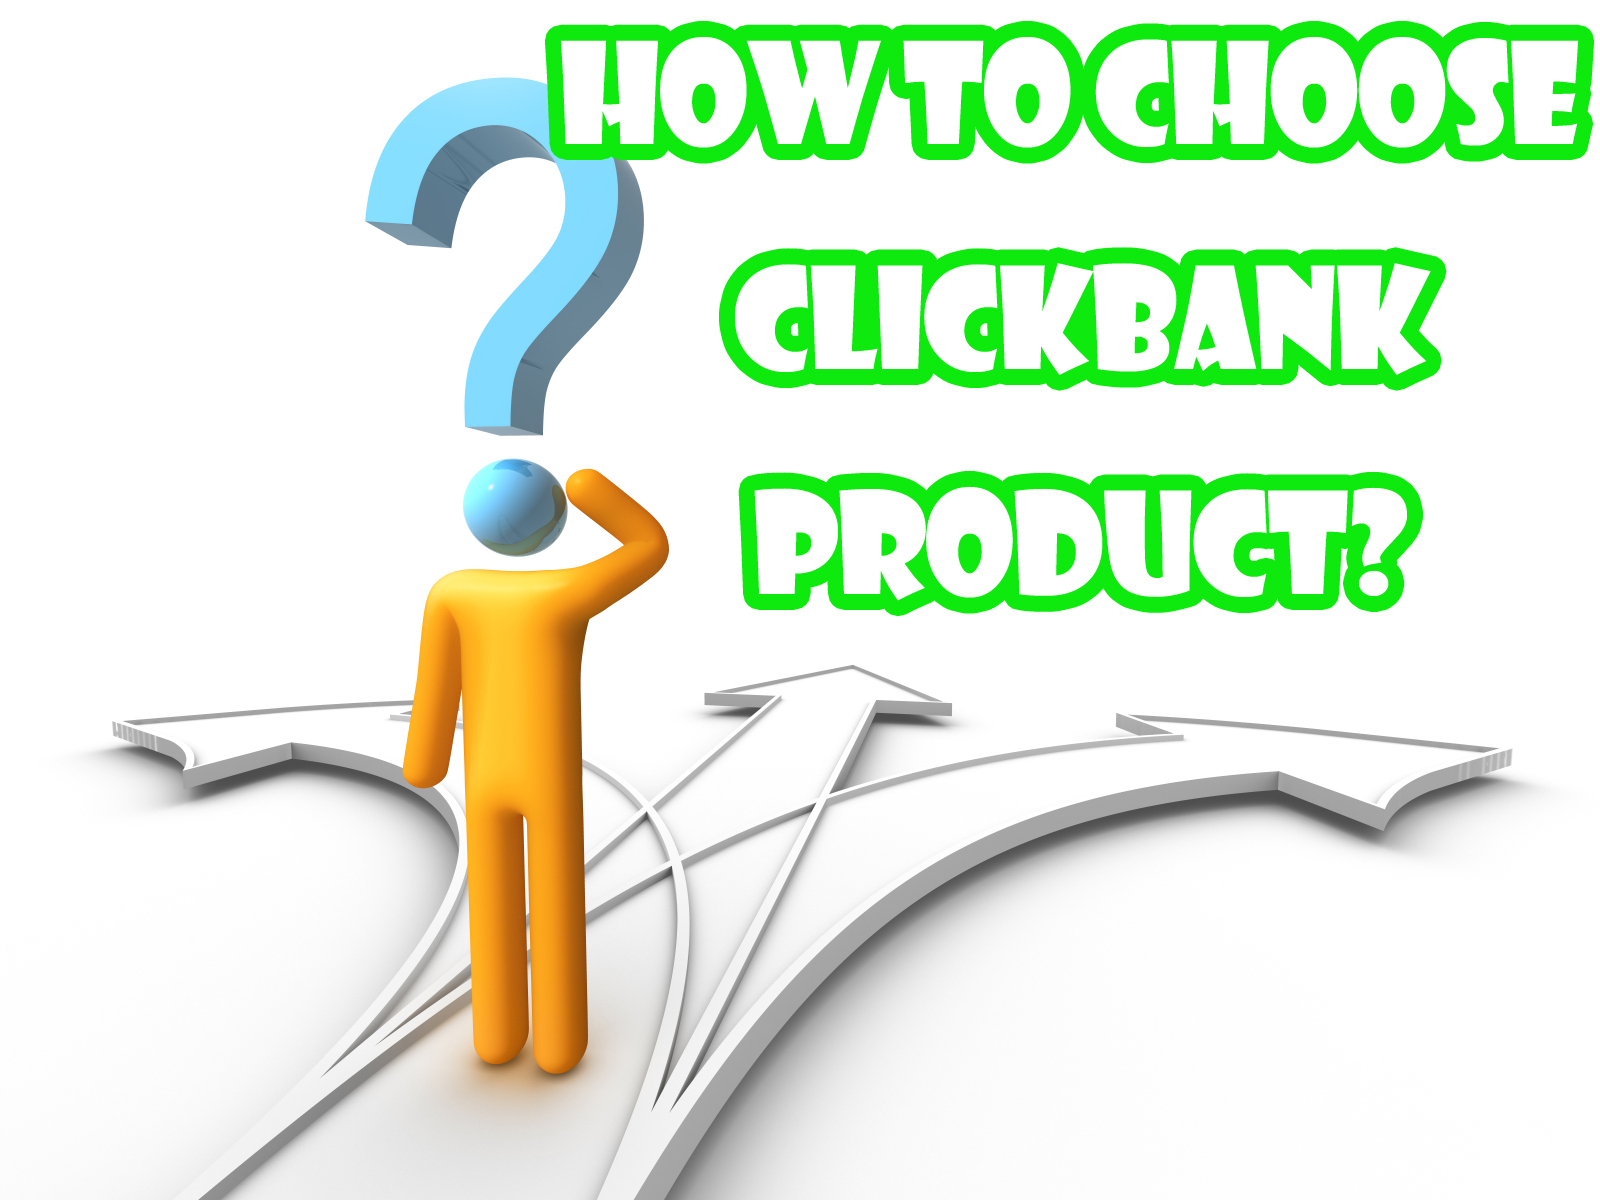 How to choose clickbank product